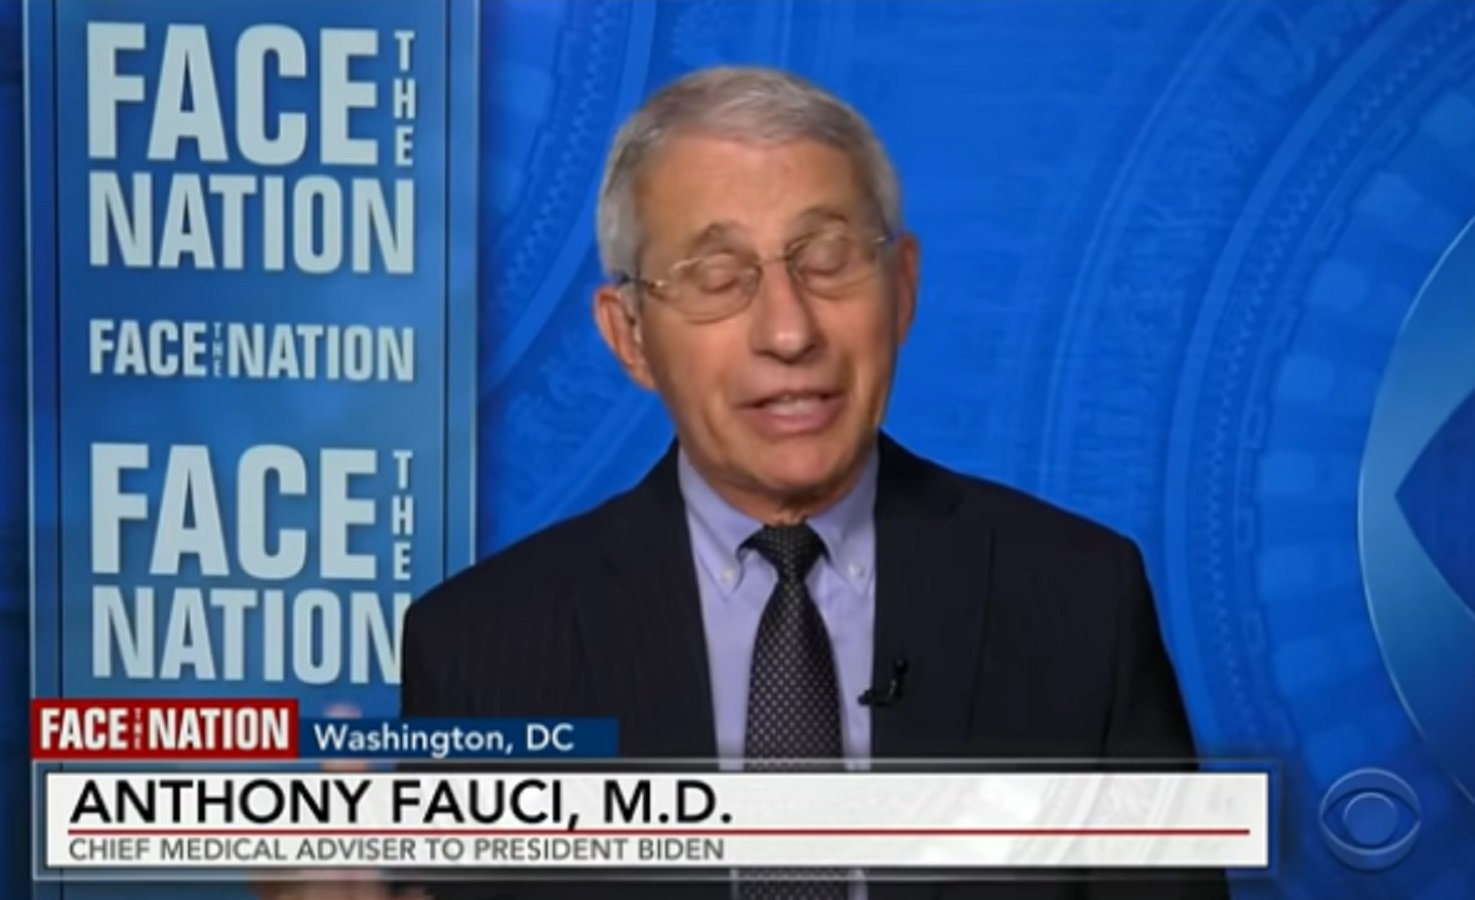 Government Cruelty: Fauci Says Children Must Wear Masks to Play Together (VIDEO)